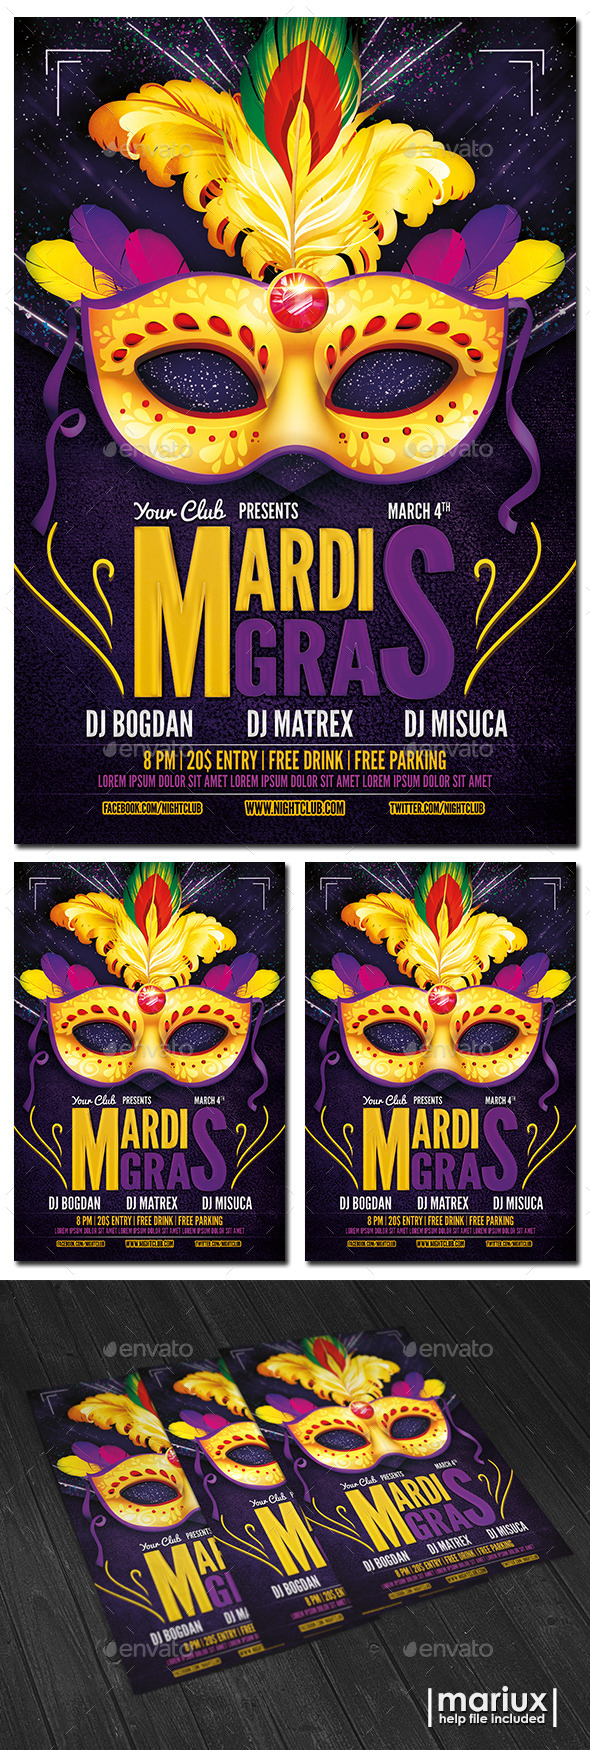 GraphicRiver Mardi Gras Party Flyer 10192262